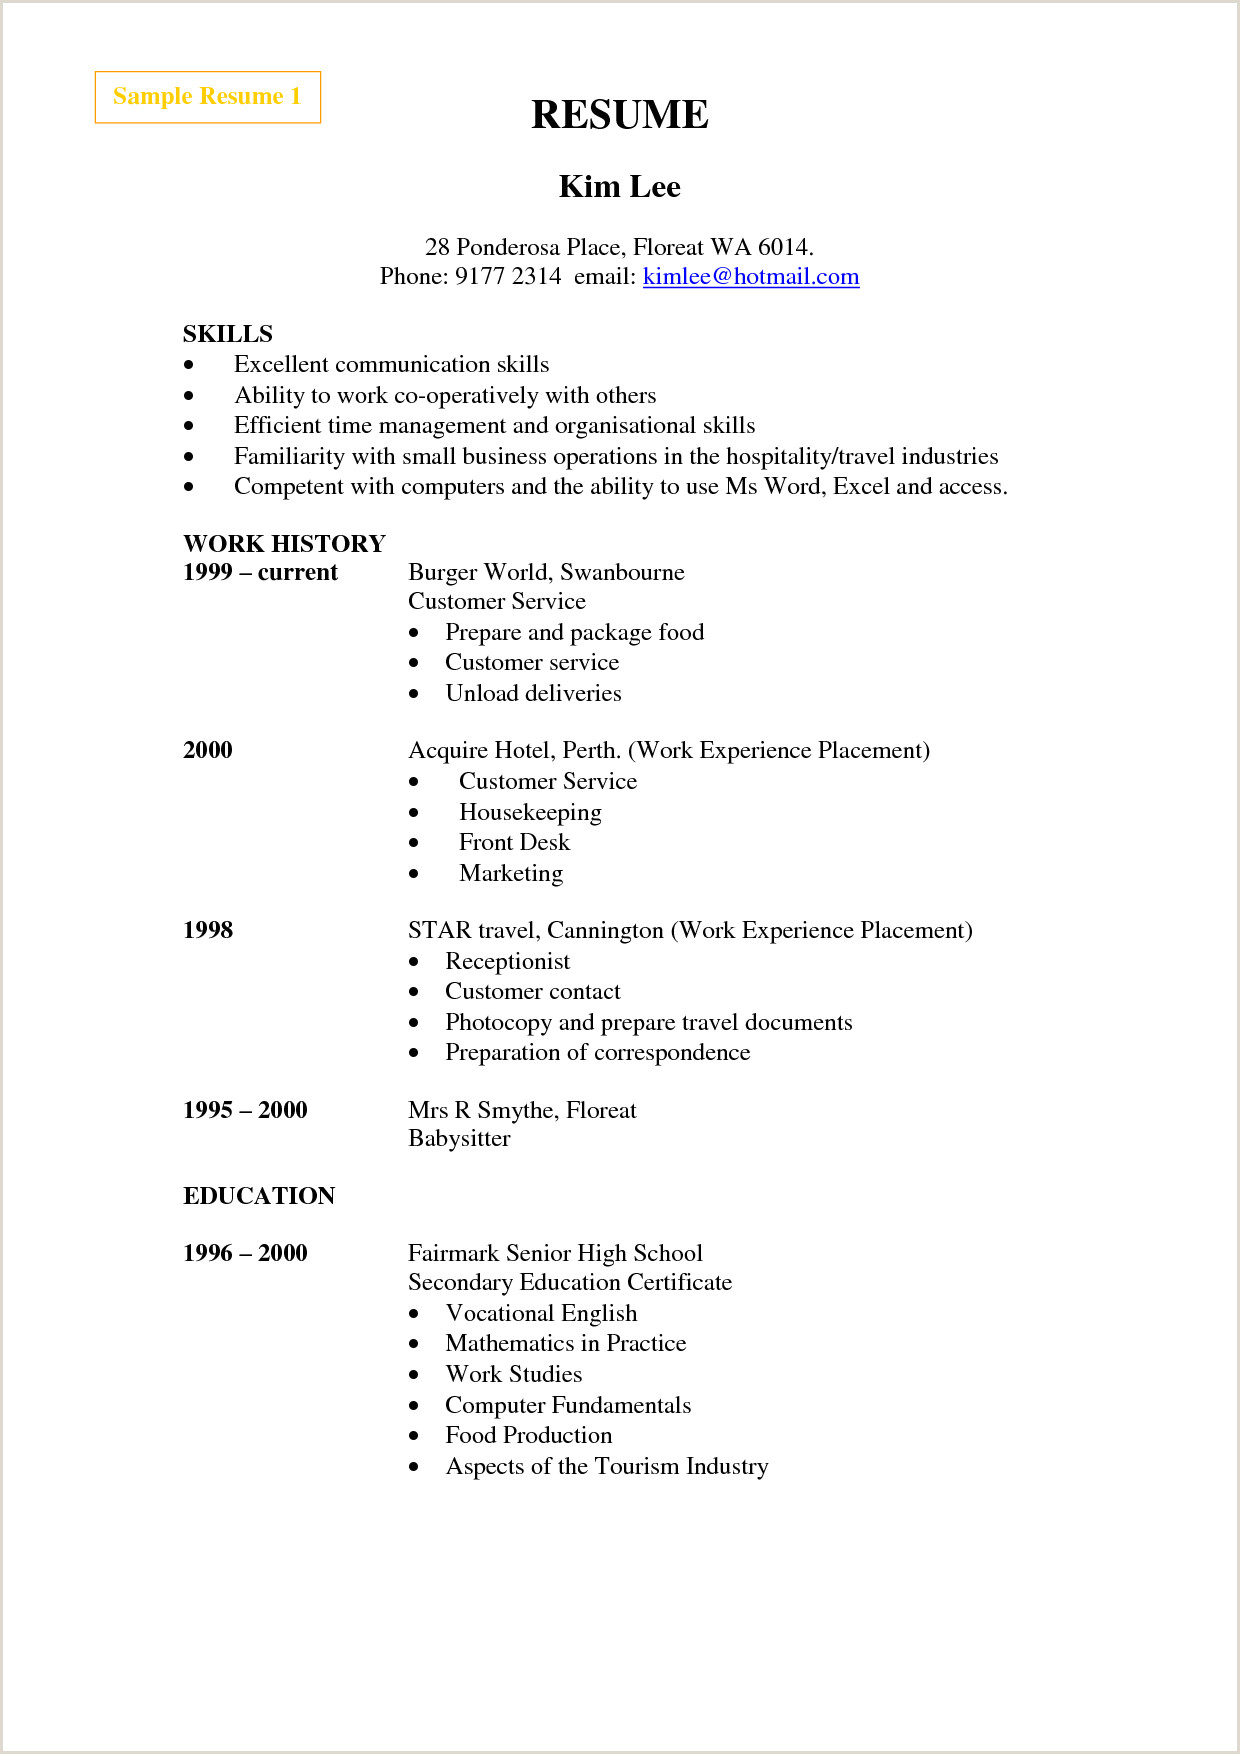 Resume Format For Hotel Job Fresher Sample Resume For Cleaner Hotel Cleaning Example Service